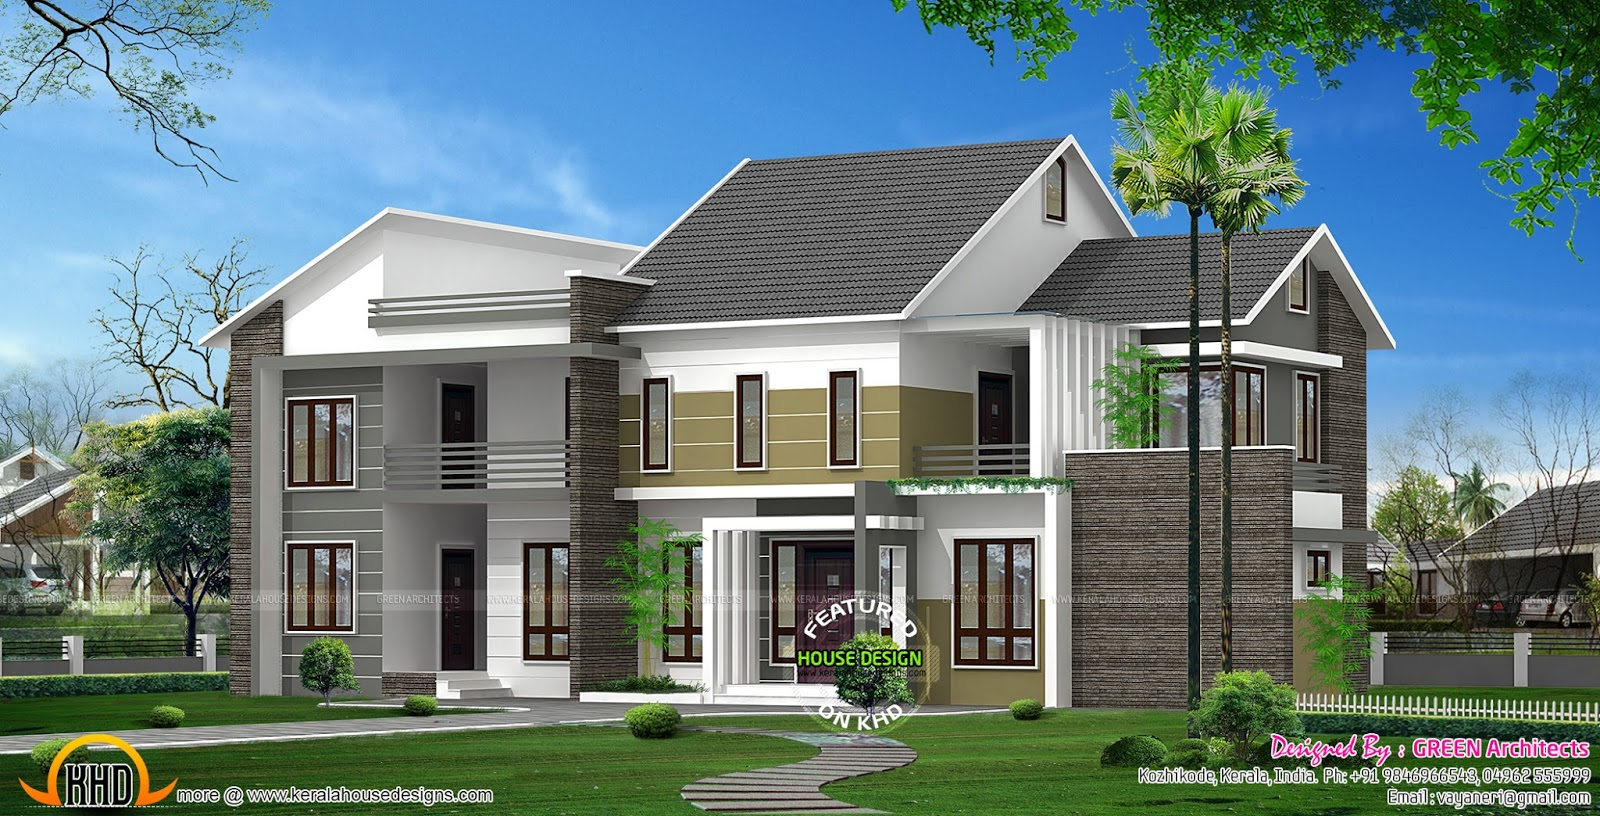 Modern 4 bedroom house in 2300 sq ft kerala home design for Modern square house